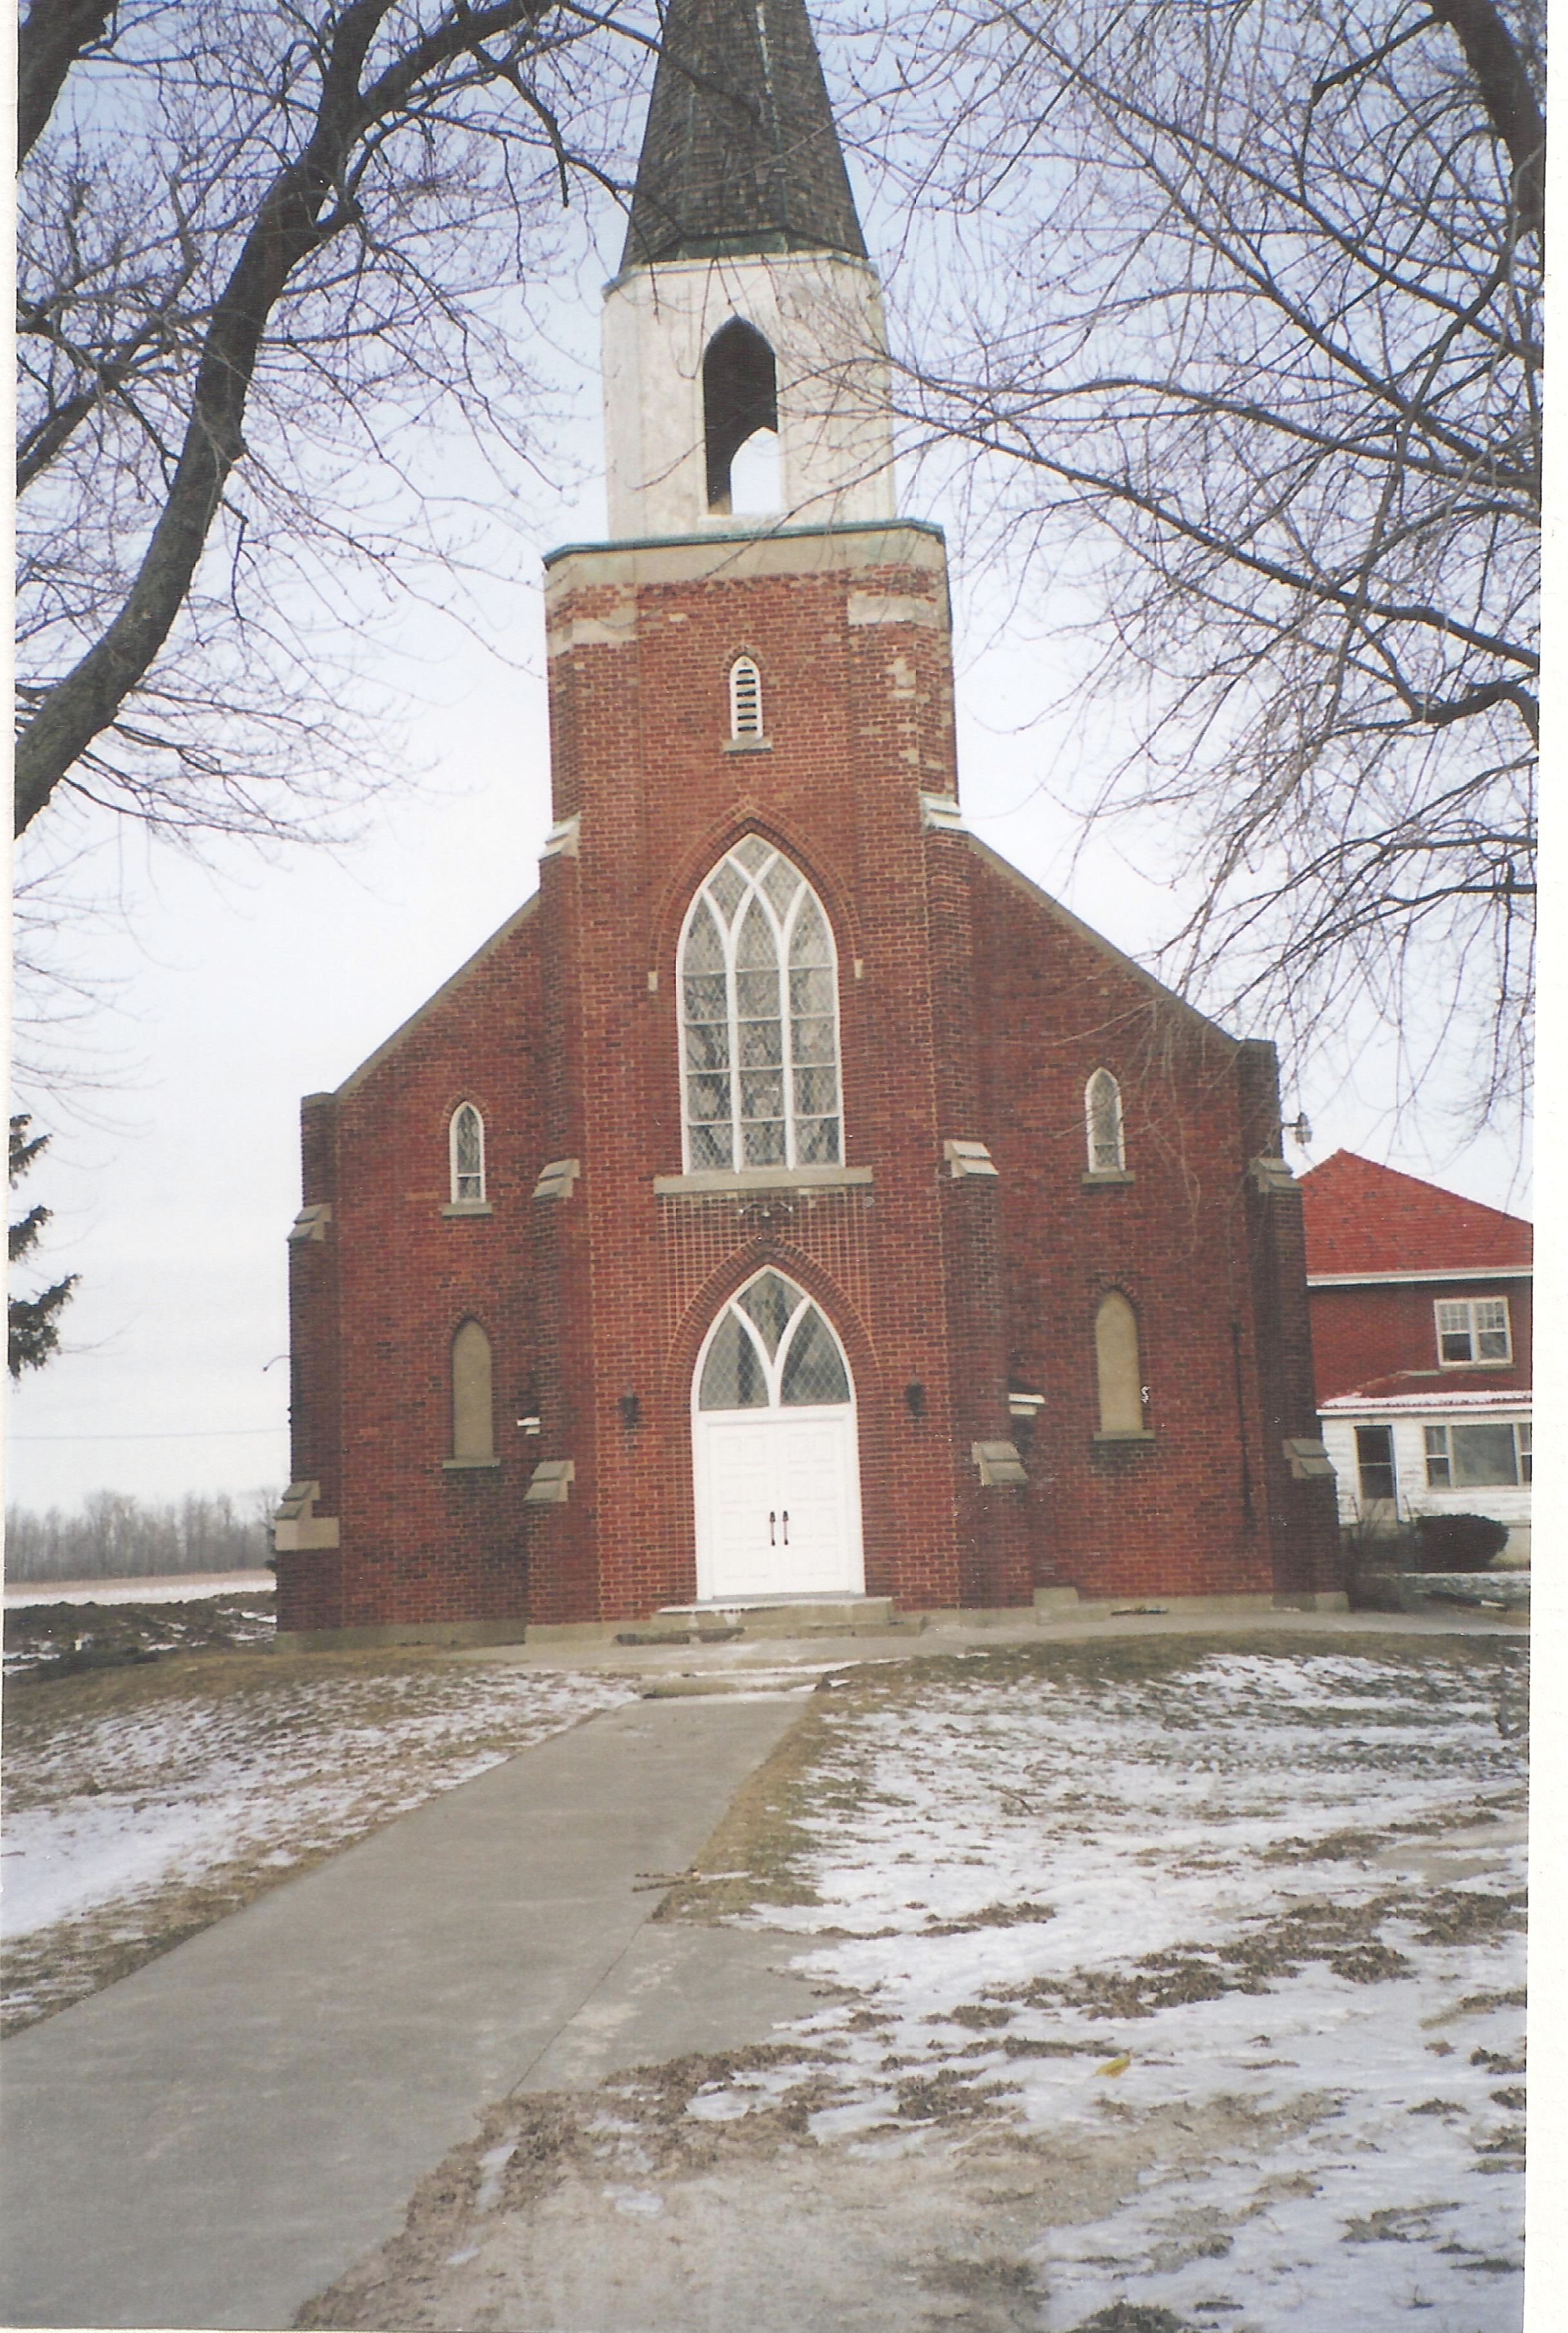 Red brick church with a tall steeple